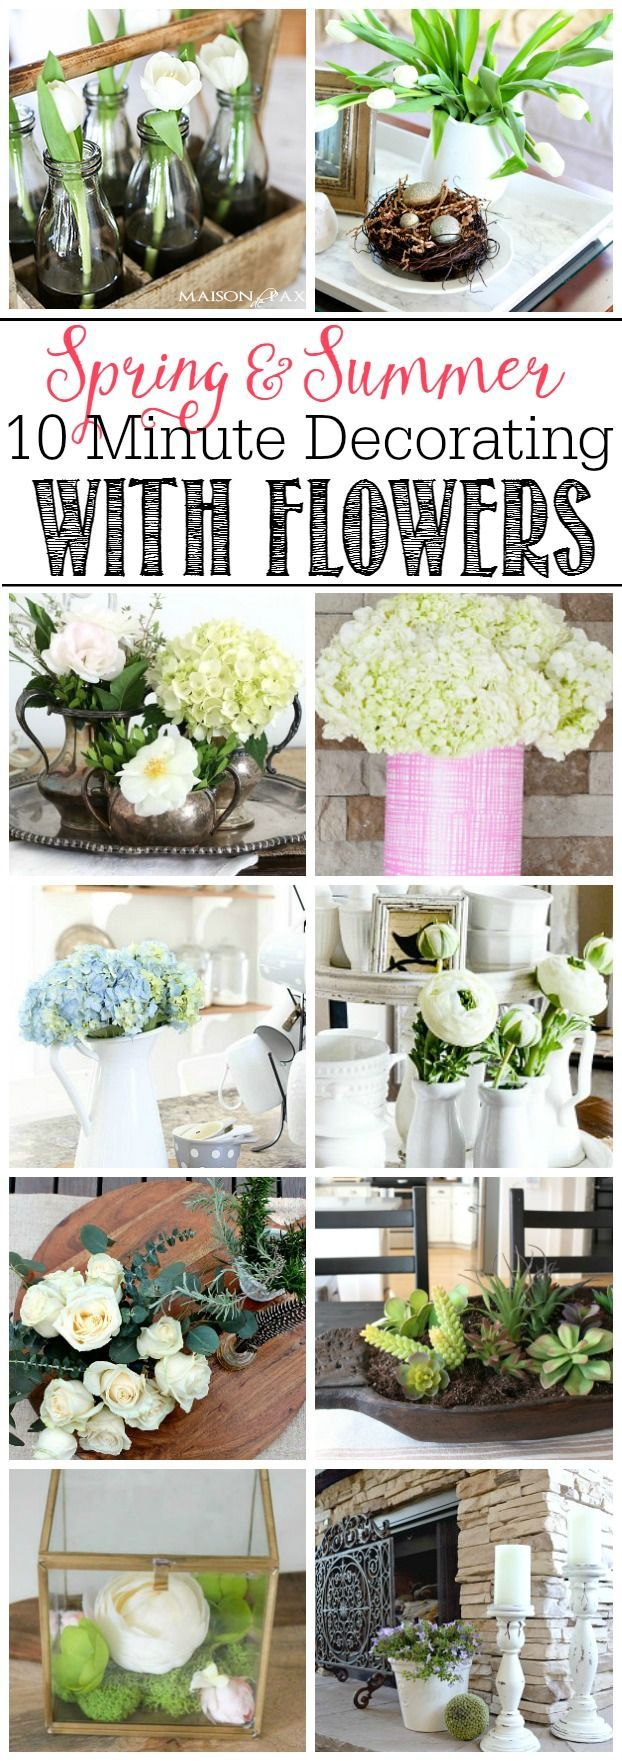 Quick and easy ways to decorate your home for spring or summer using flowers. 10 minutes is all you need!